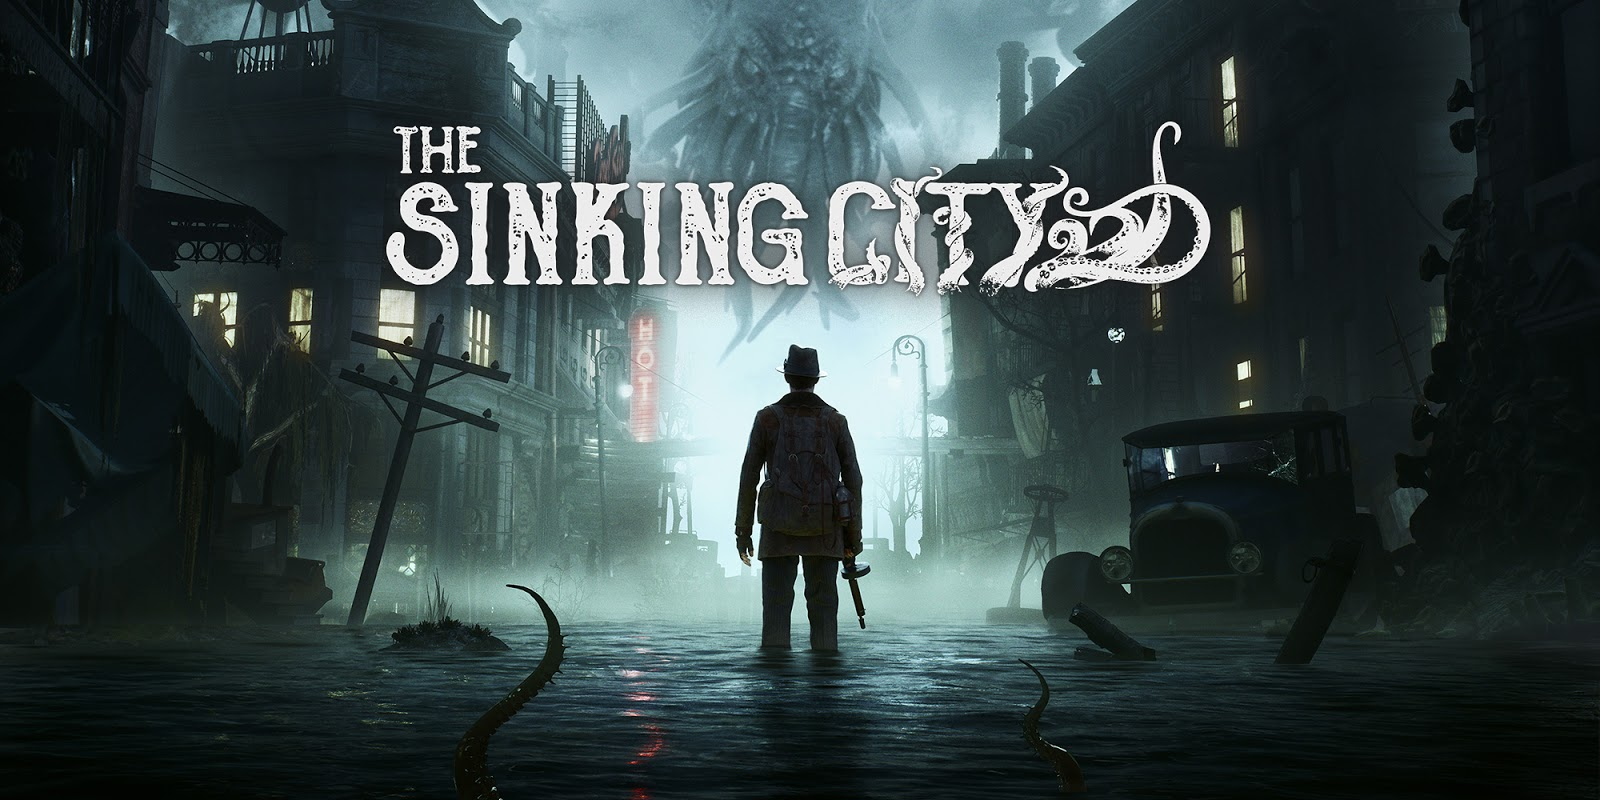 Horror And Zombie Film Reviews Movie Reviews Horror Videogame Reviews The Sinking City 2019 Horror Video Game Review Ps4